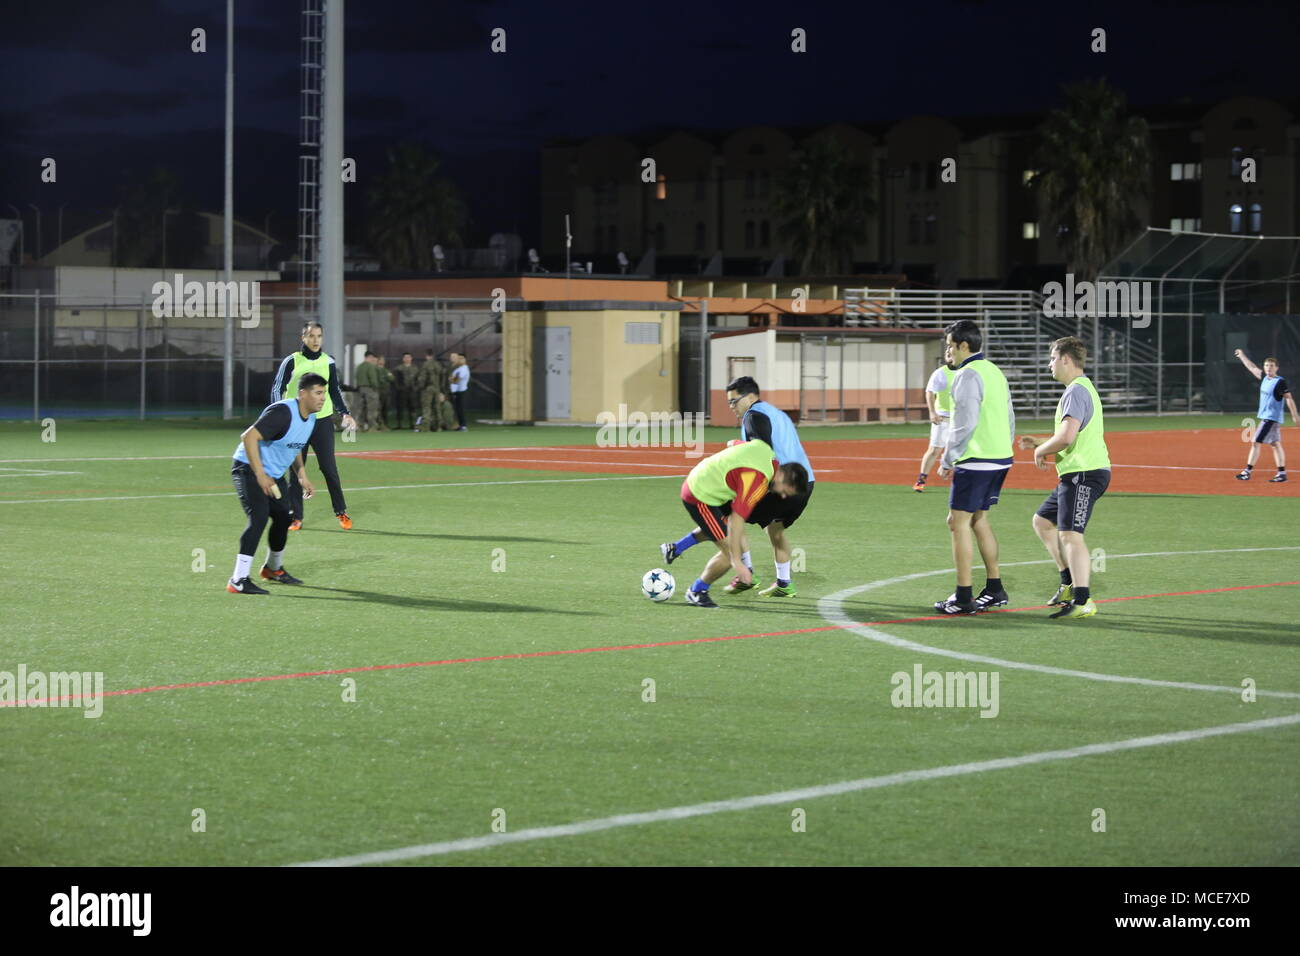 A U.S. Marine assigned to Special Purpose Marine Air-Ground Task Force Crisis-Response-Africa fights for ball possession against an opponent during Naval Aviation Station soccer tournament aboard NAS Sigonella, Italy, Feb. 12, 2018. SPMAGTF-CR-AF is deployed to conduct crisis-response and theater-security operations in Europe and Africa. (U.S. Marine Corps photo by Cpl. Patrick Osino) - Stock Image